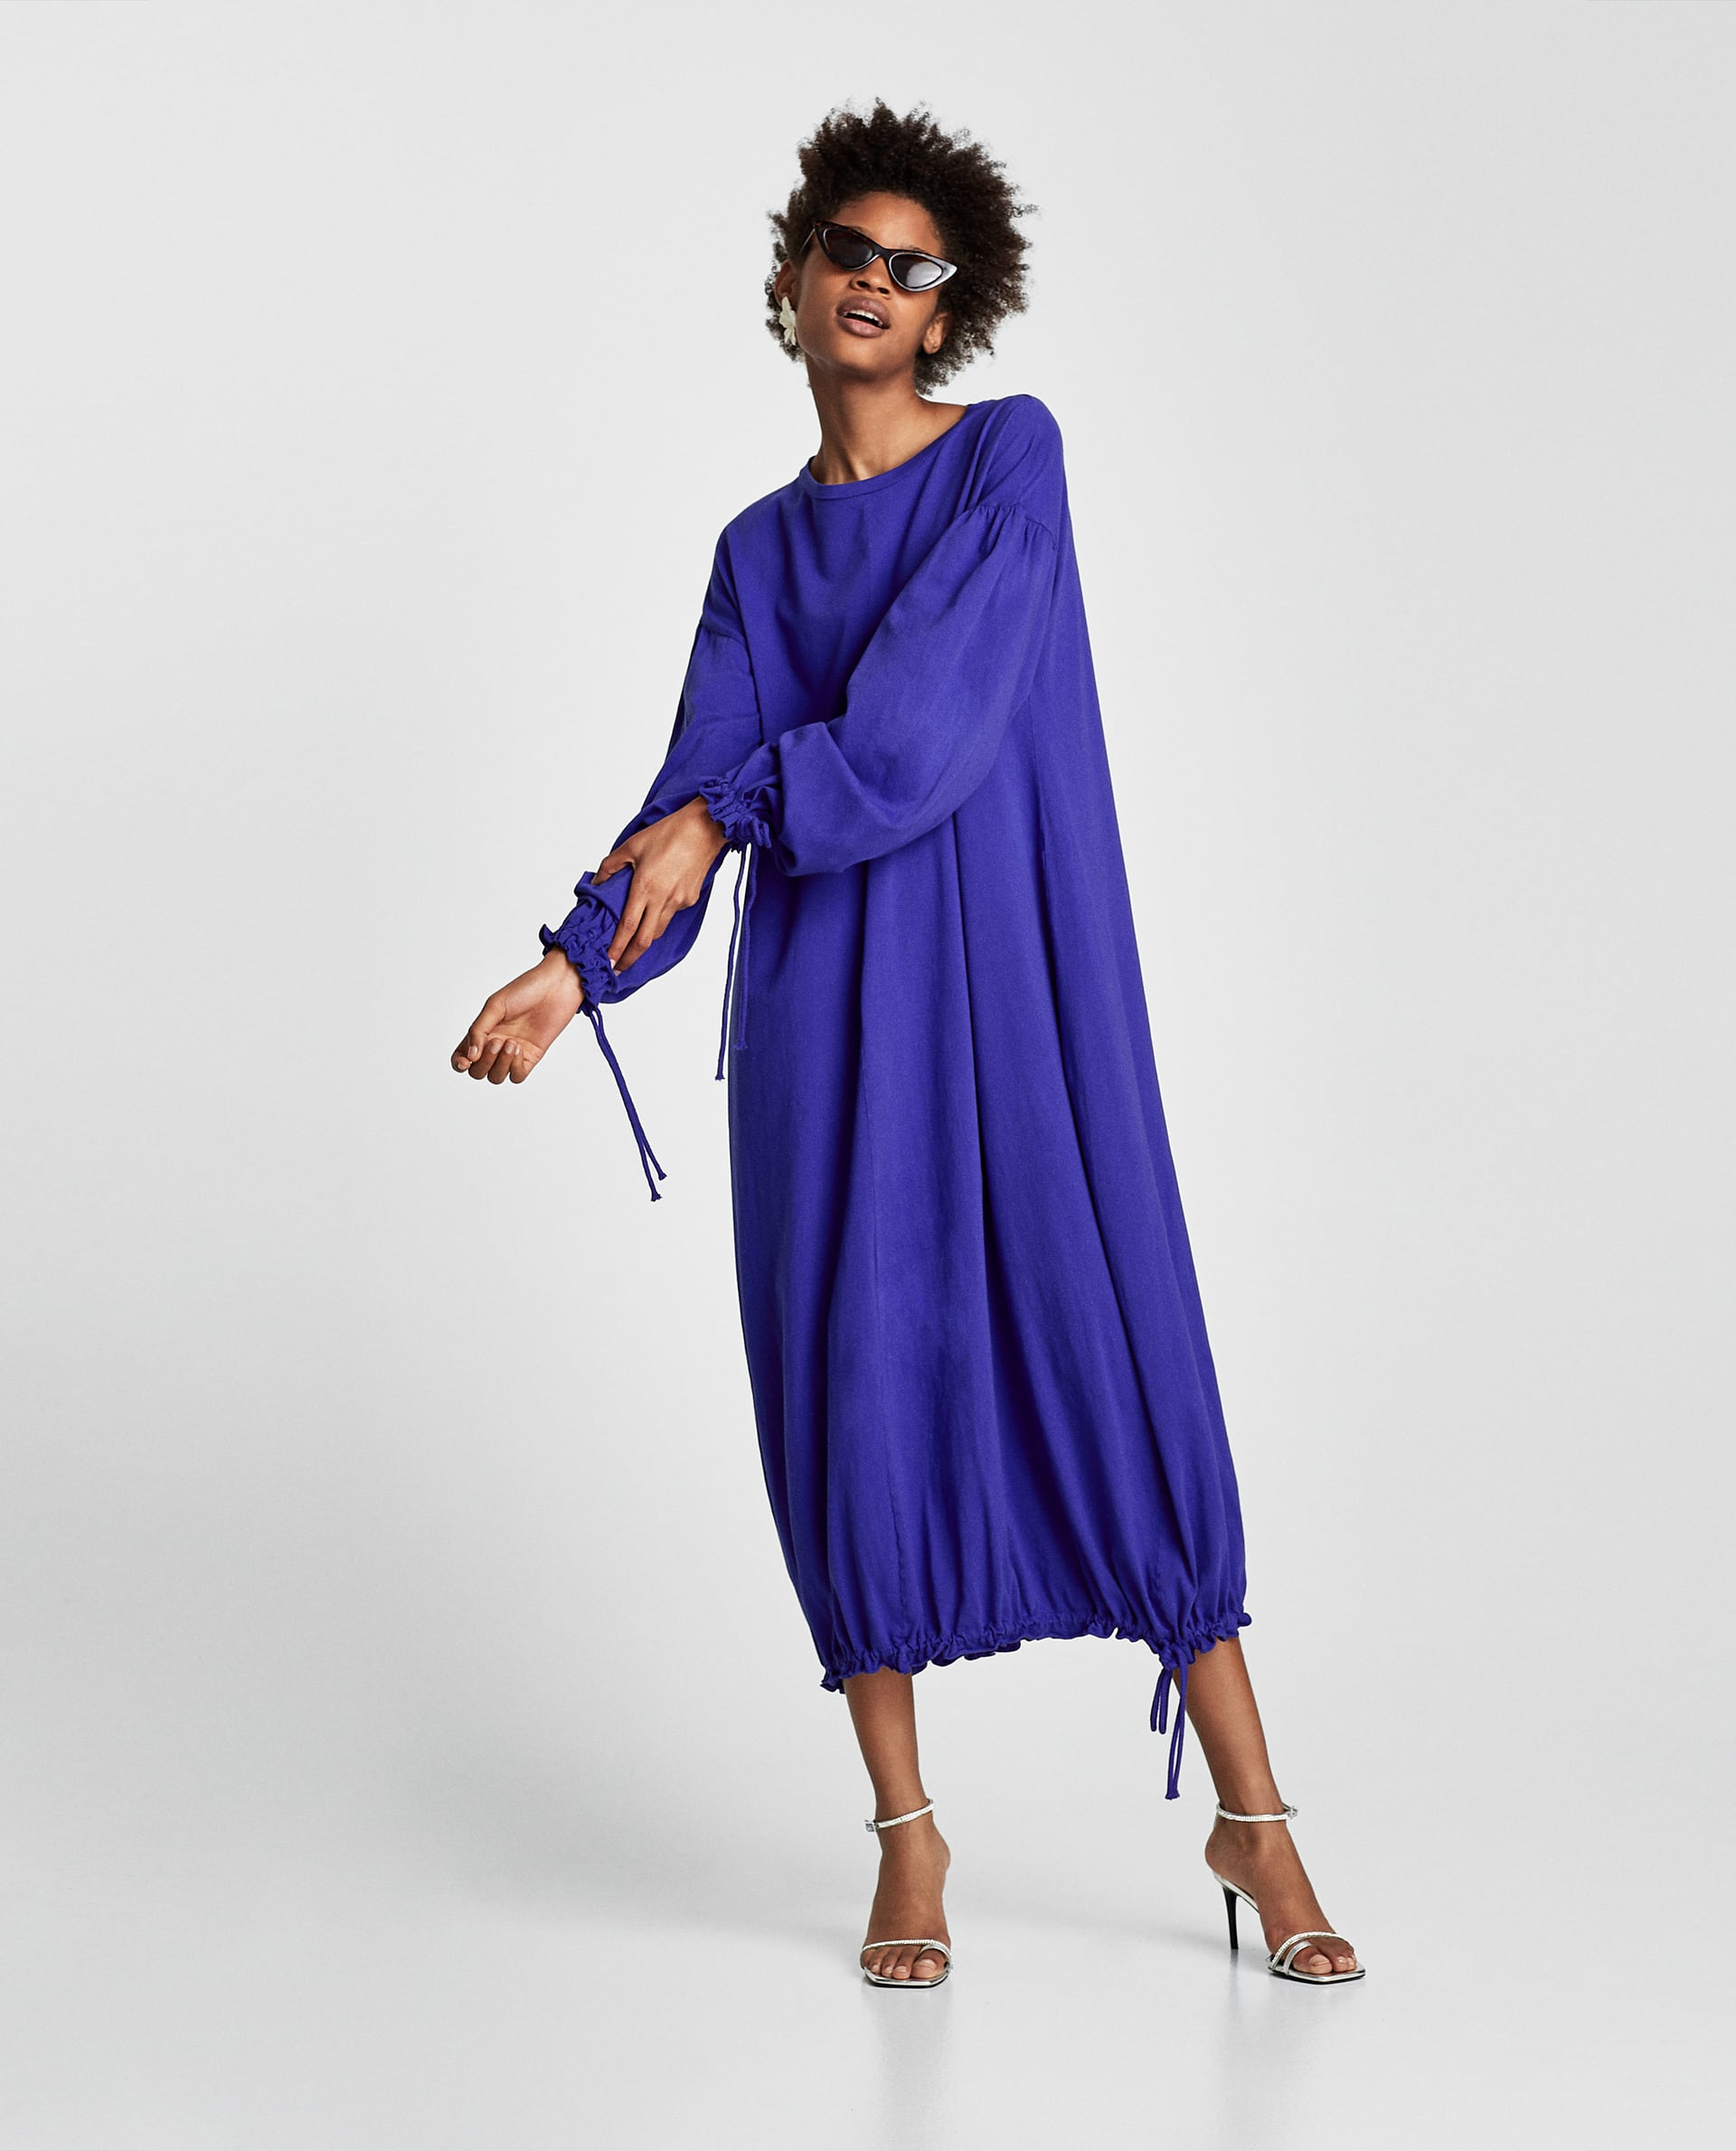 Zara Purple Balloon.jpg